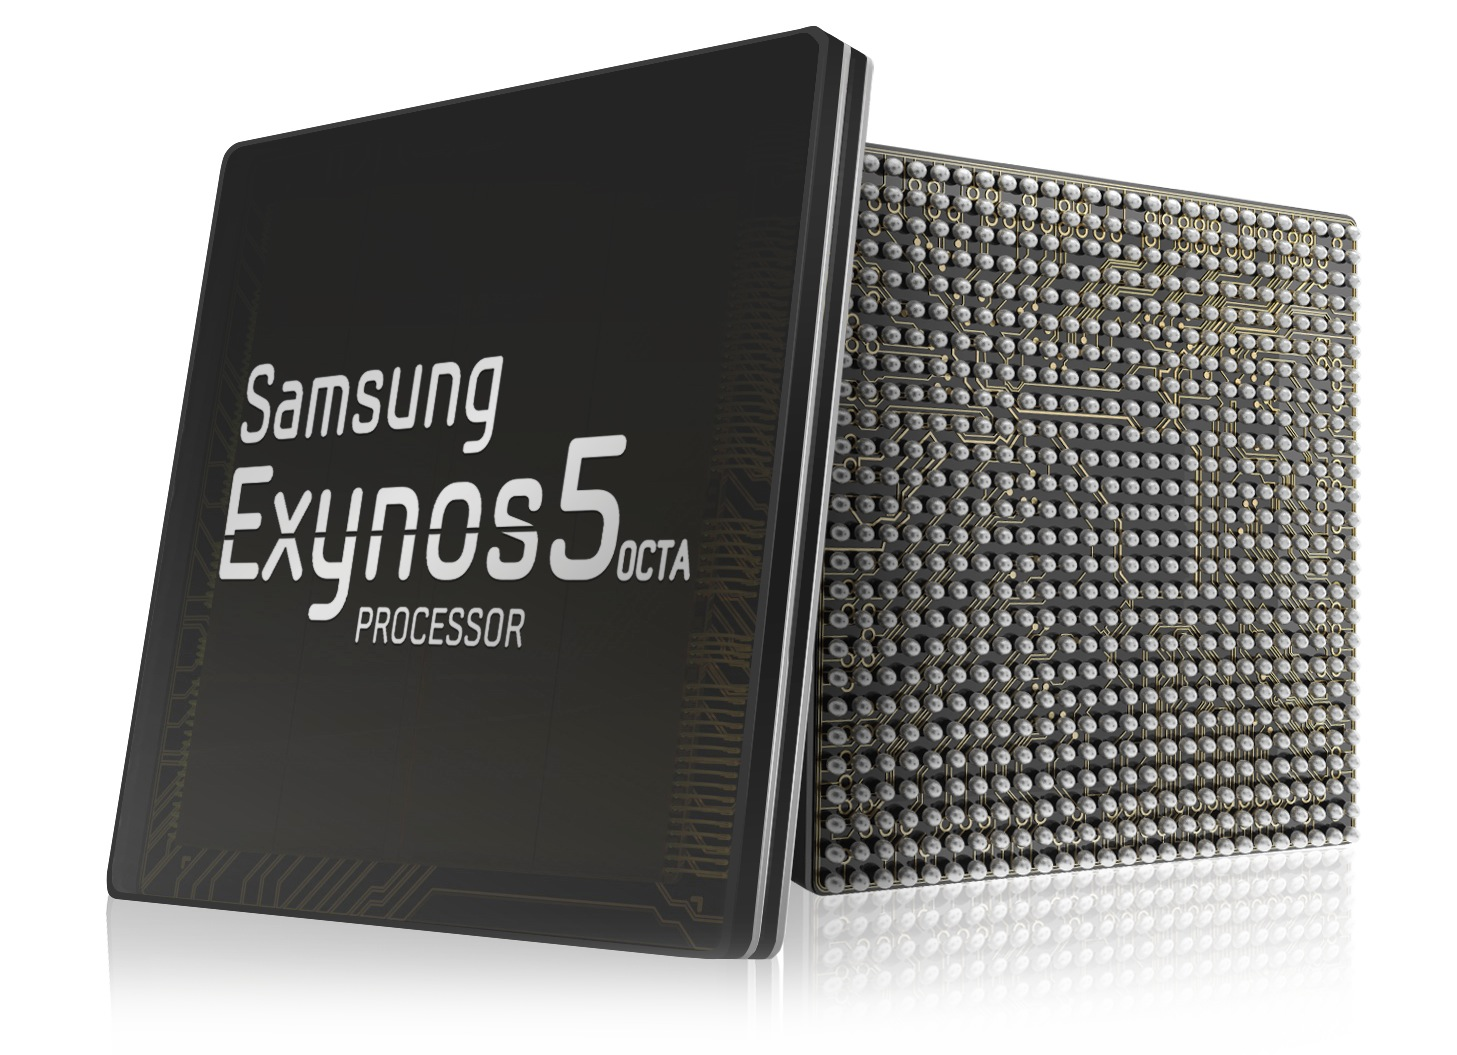 Samsung Exynos Octa 5 (two up)